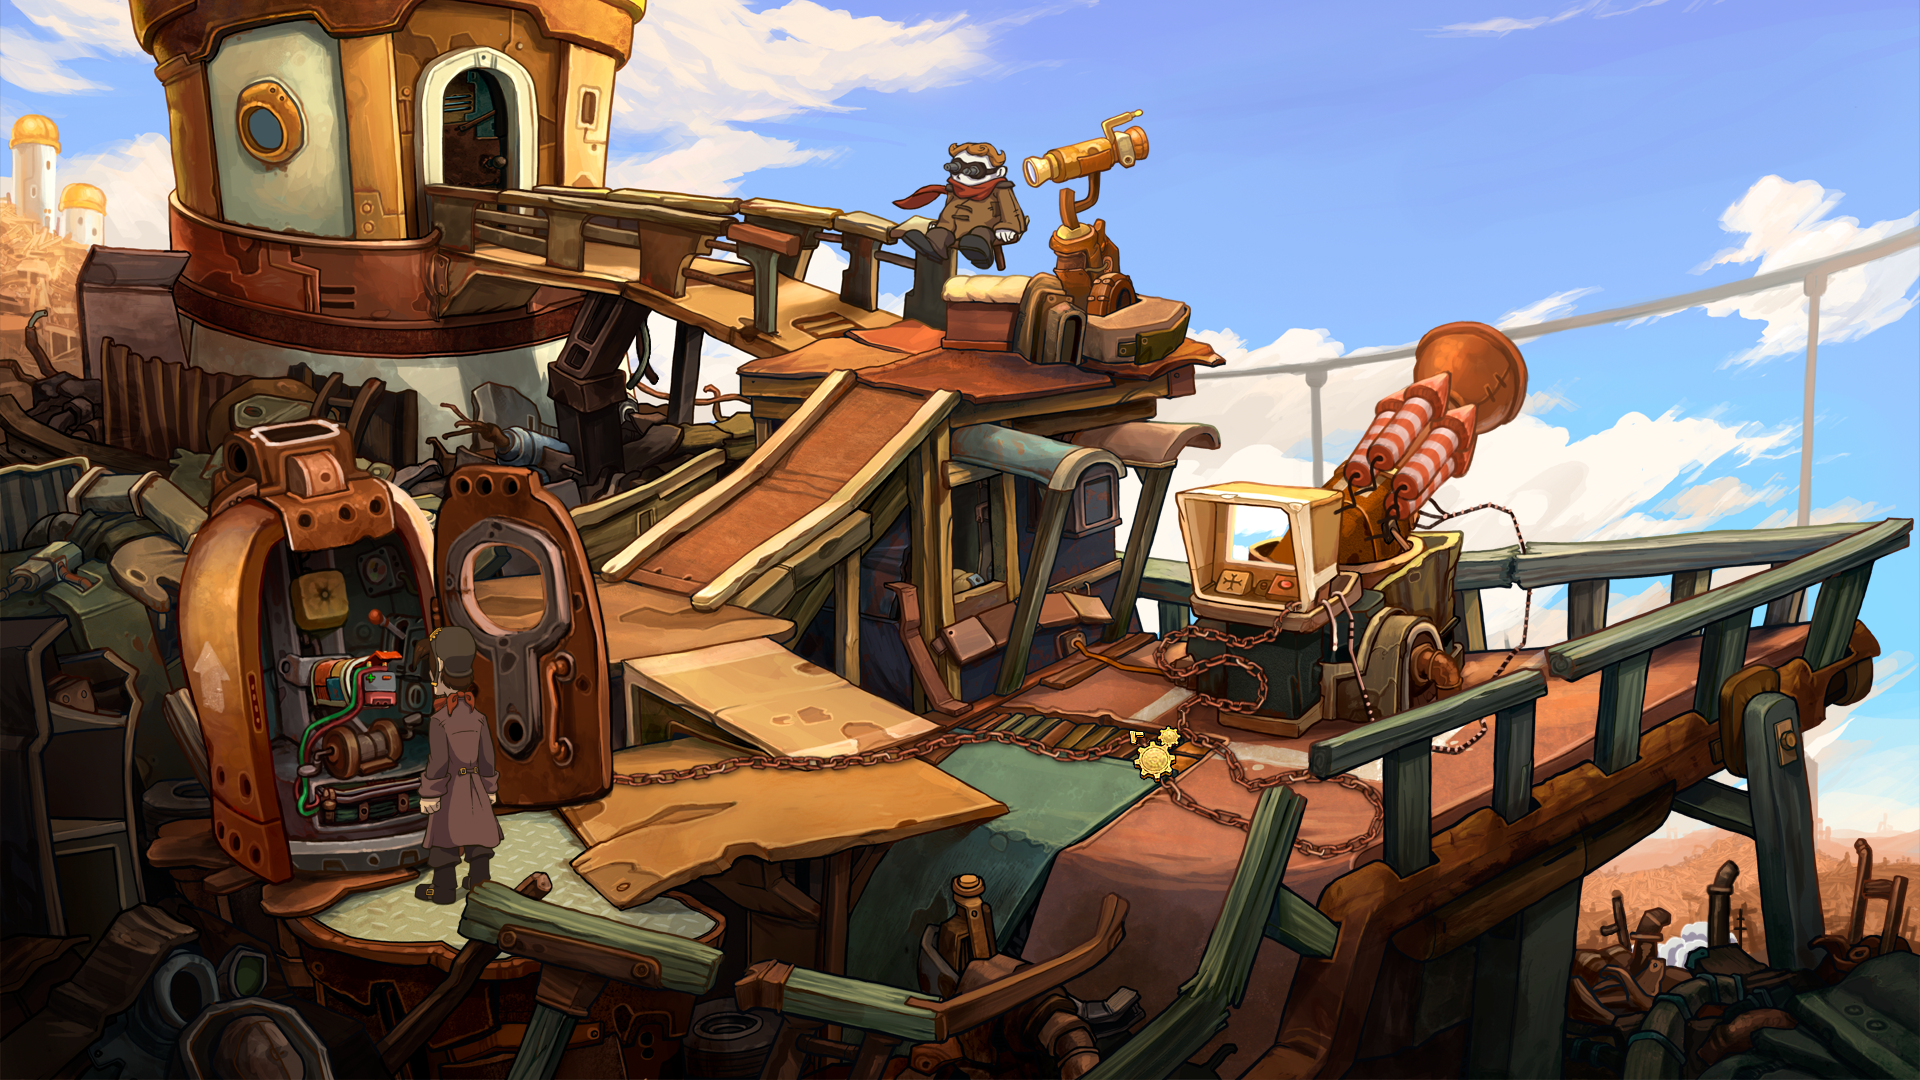 Deponia Windows What could possibly go wrong?